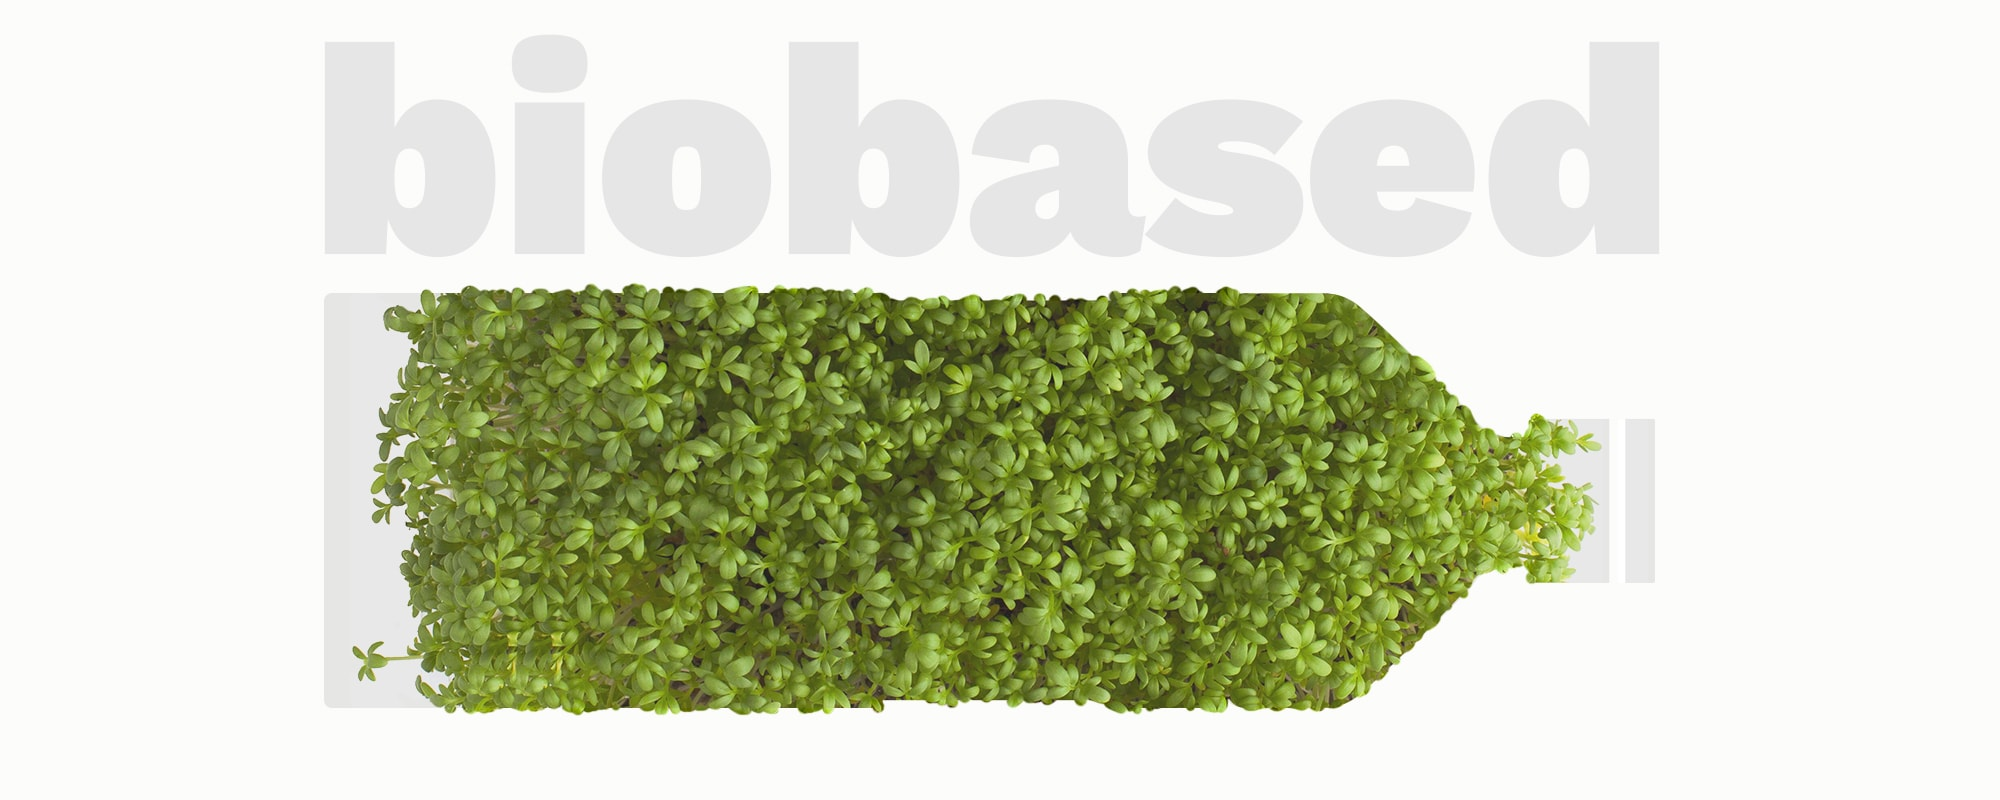 bioplastic biobased biodegradable